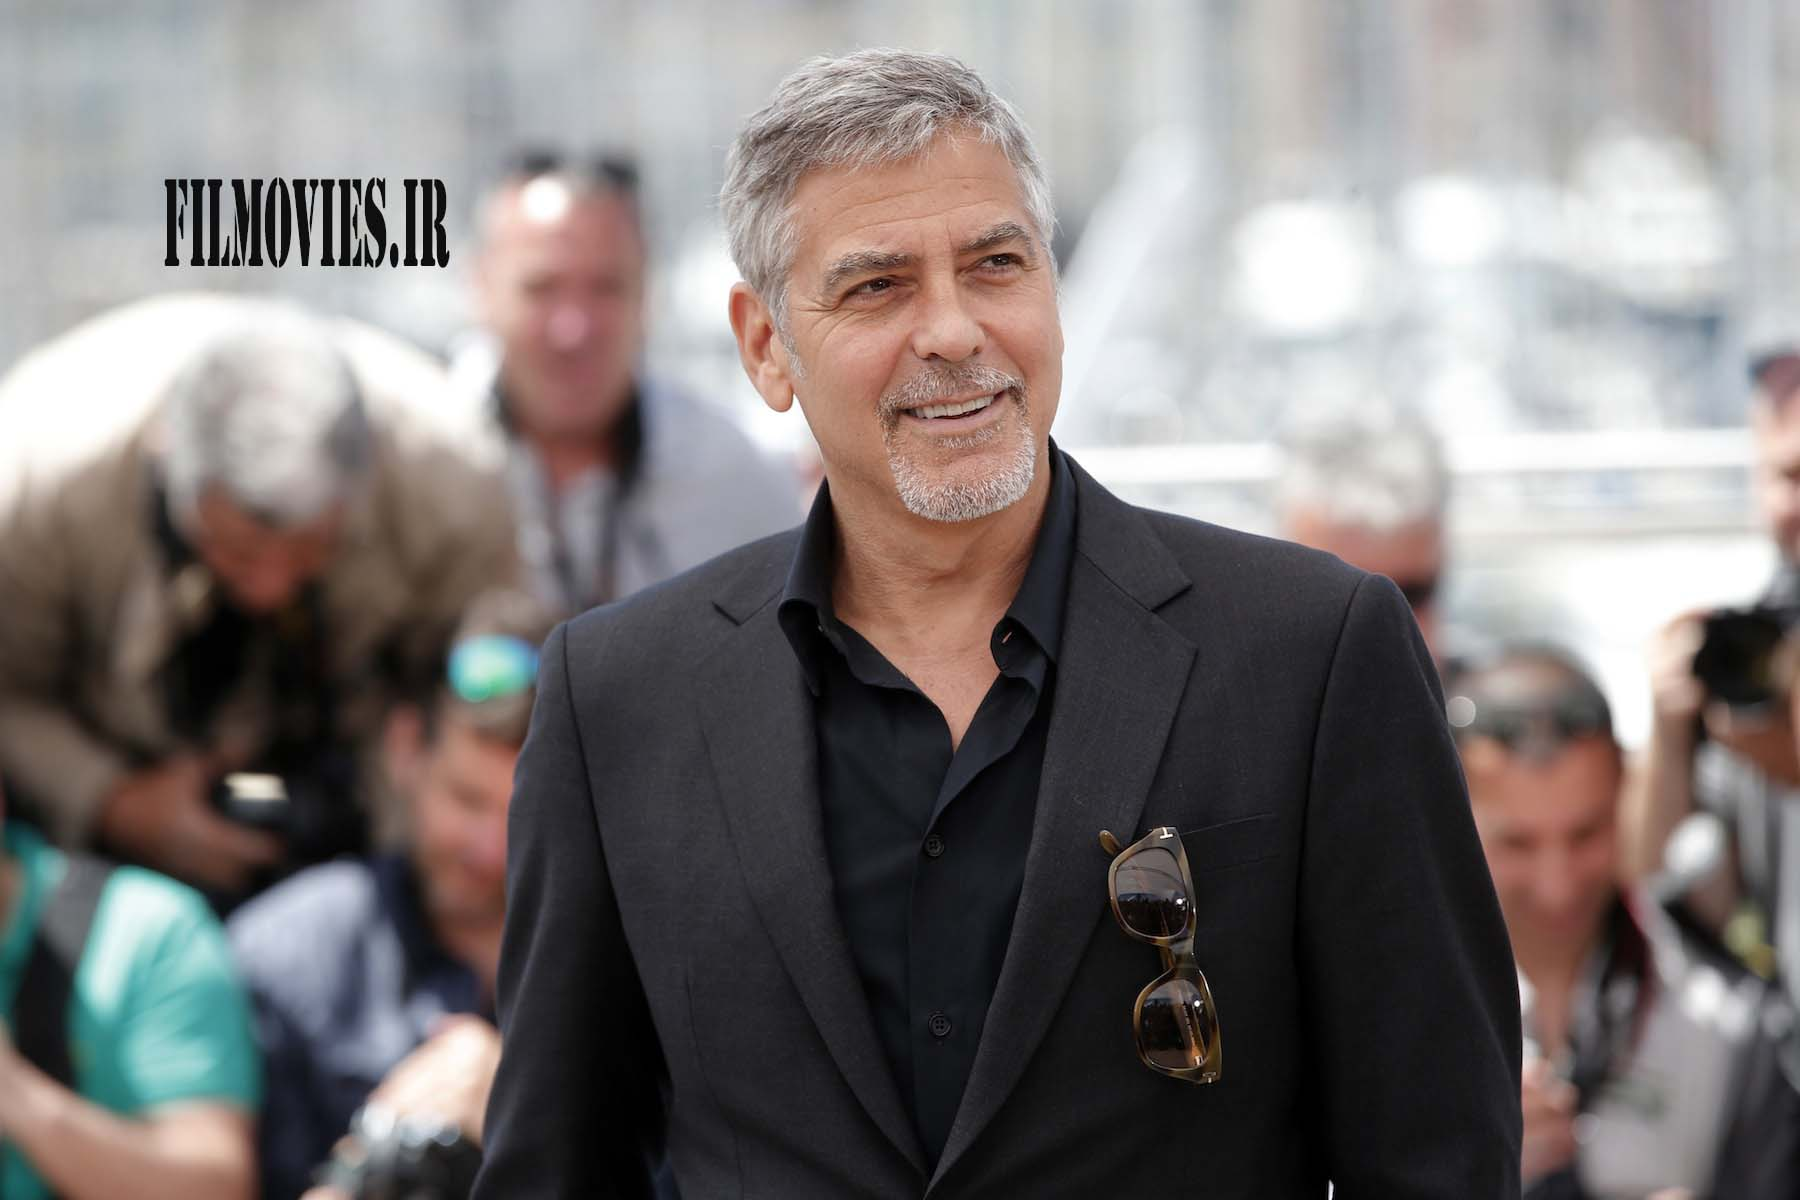 Actor George Clooney poses for photographers, during a photo call for the film Money Monster at the 69th international film festival, Cannes, southern France, Thursday, May 12, 2016. (AP Photo/Thibault Camus)